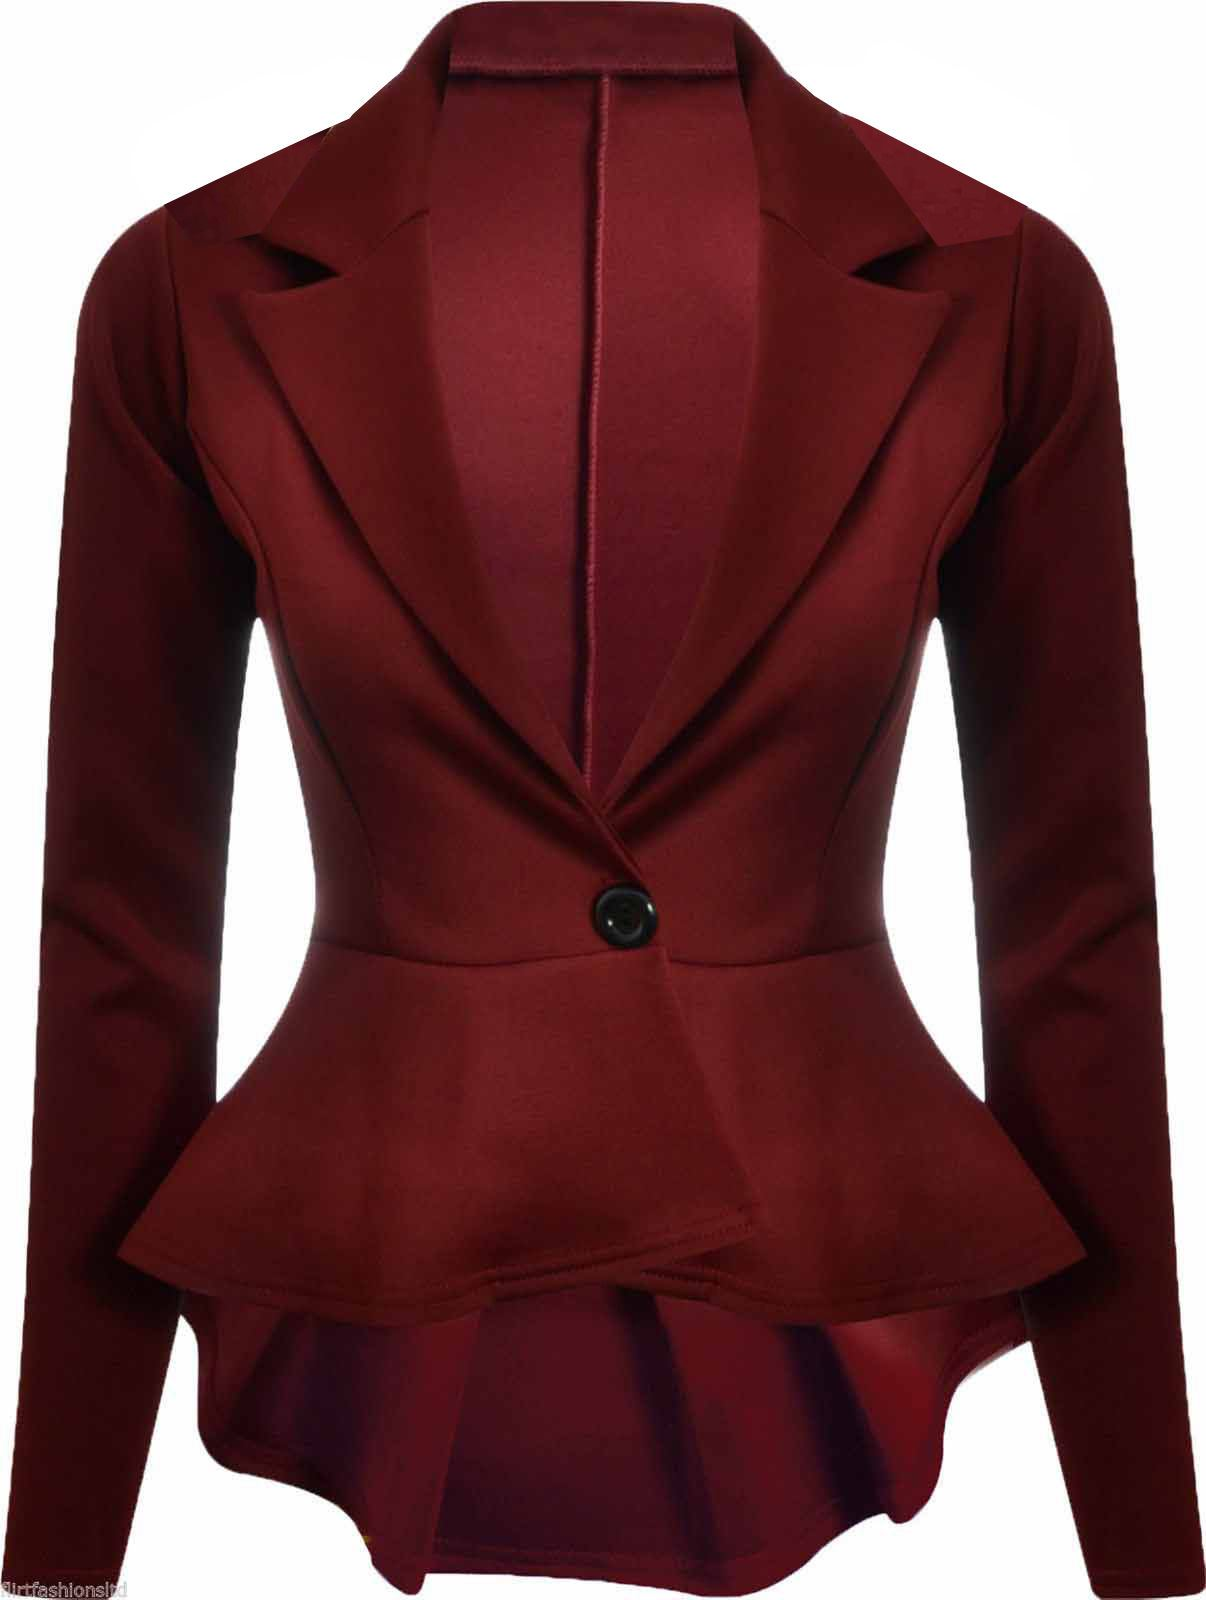 Find a great selection of women's blazers & jackets at disborunmaba.ga Shop top brands like Vince Camuto, Topshop, Lafayette and more. Free shipping and returns.